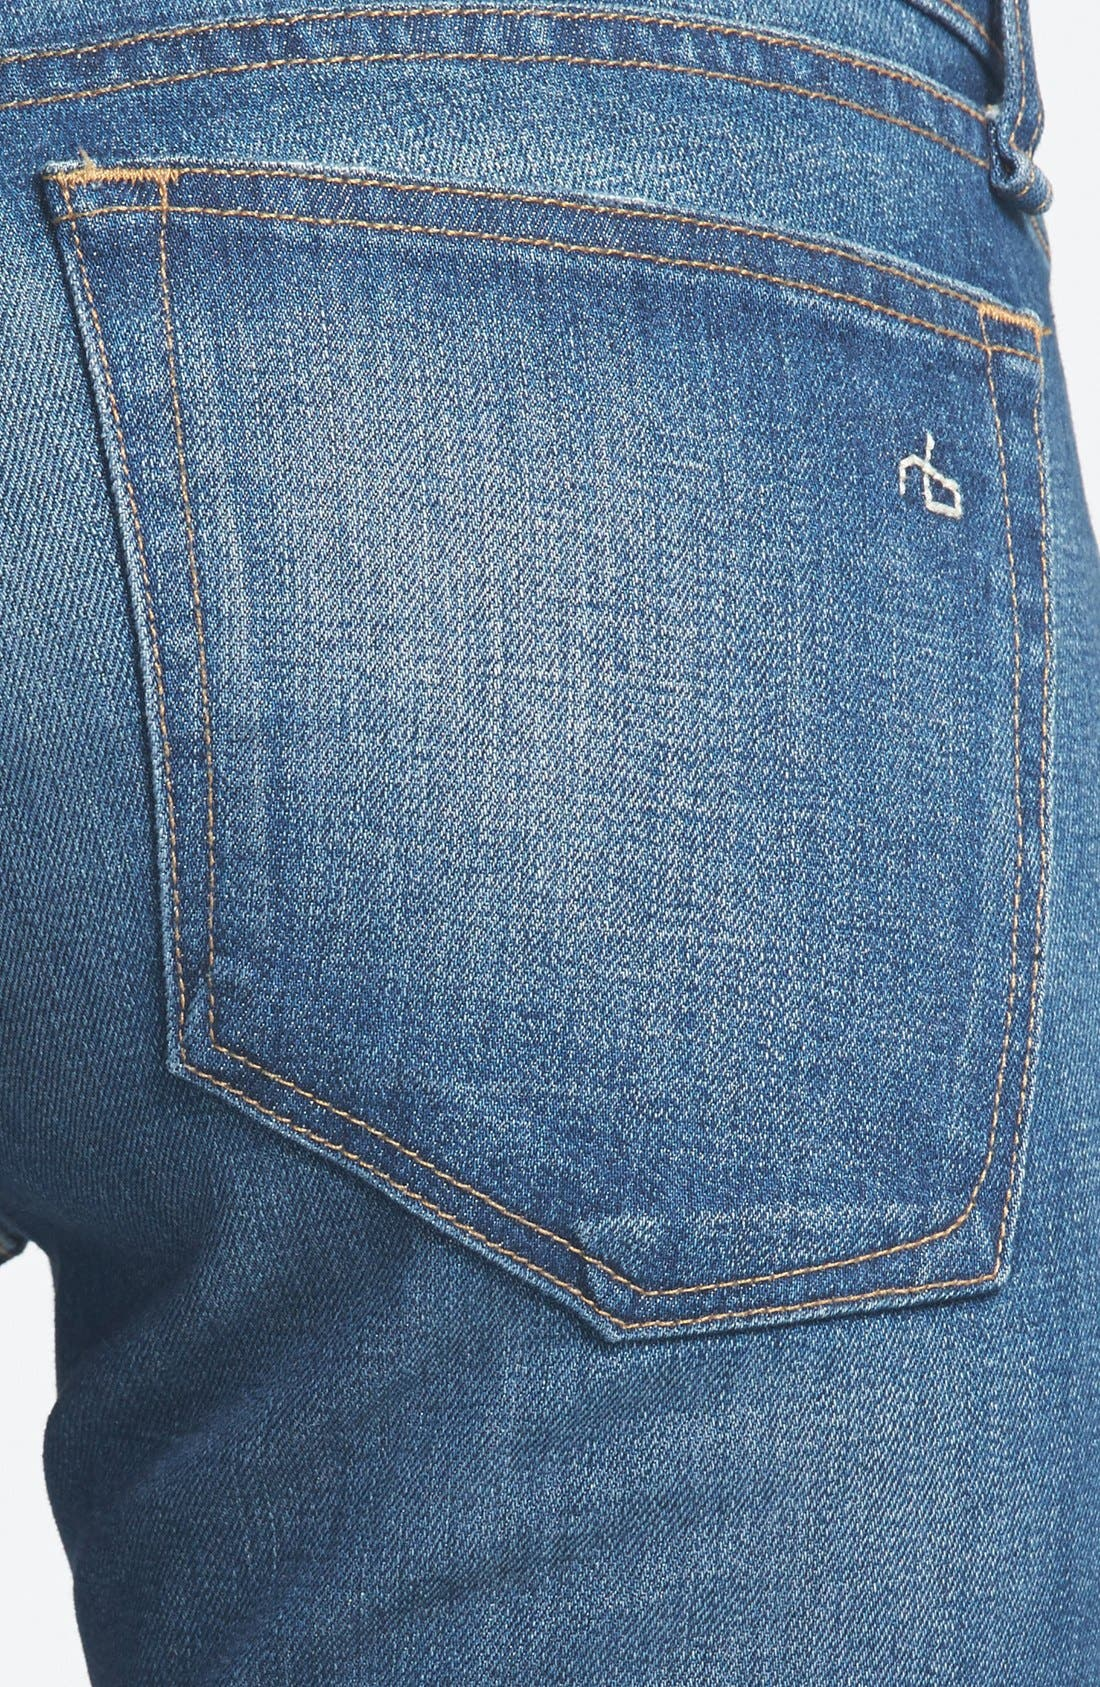 Alternate Image 3  - rag & bone/JEAN 'The Dre' Slim Fit Boyfriend Jeans (Bradford)